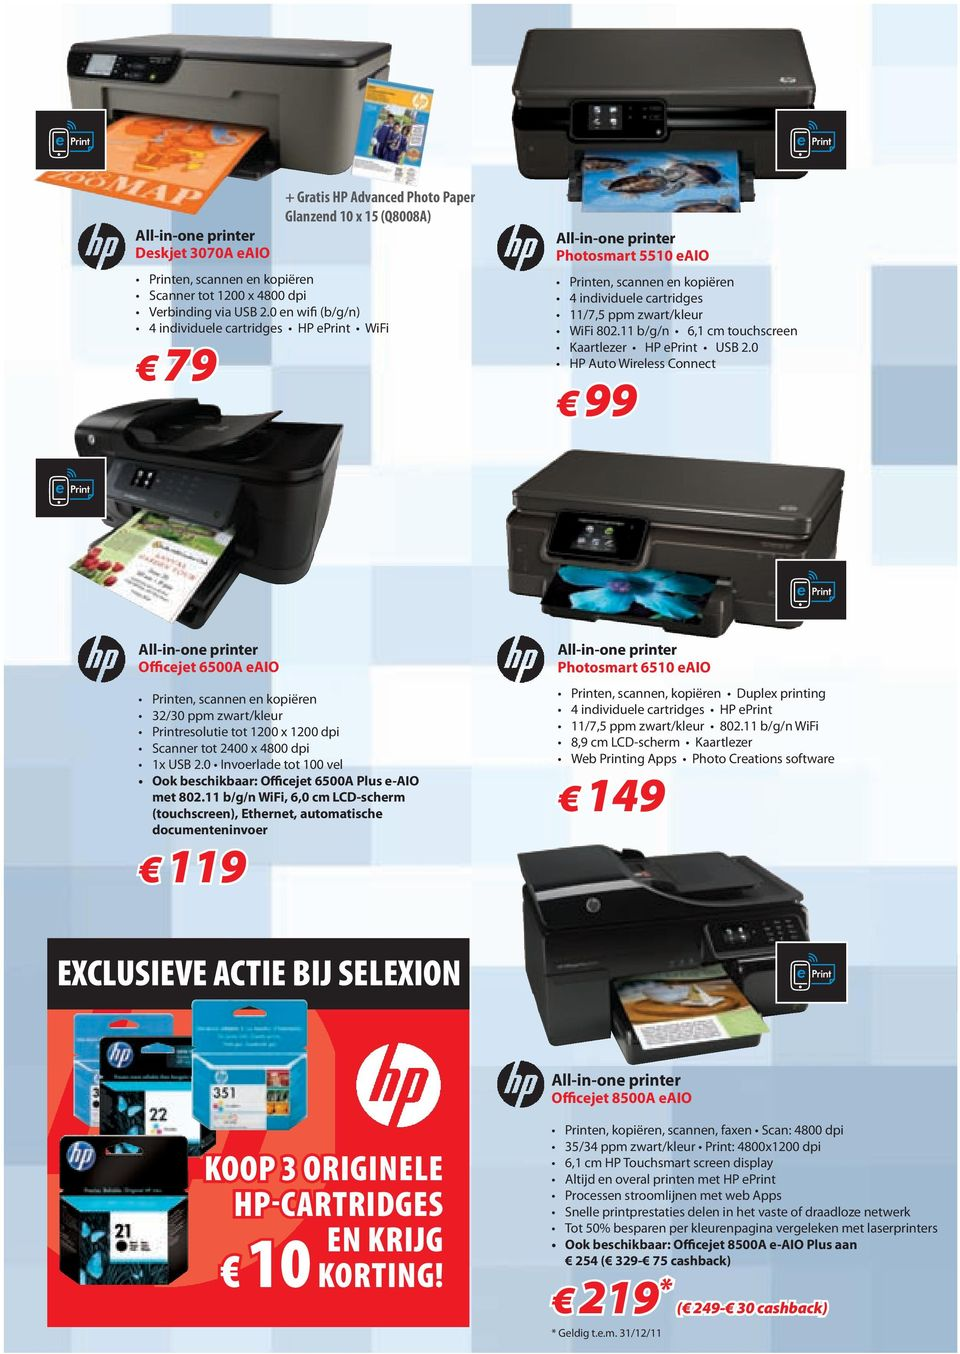 individuele cartridges 11/7,5 ppm zwart/kleur WiFi 802.11 b/g/n 6,1 cm touchscreen Kaartlezer HP eprint USB 2.